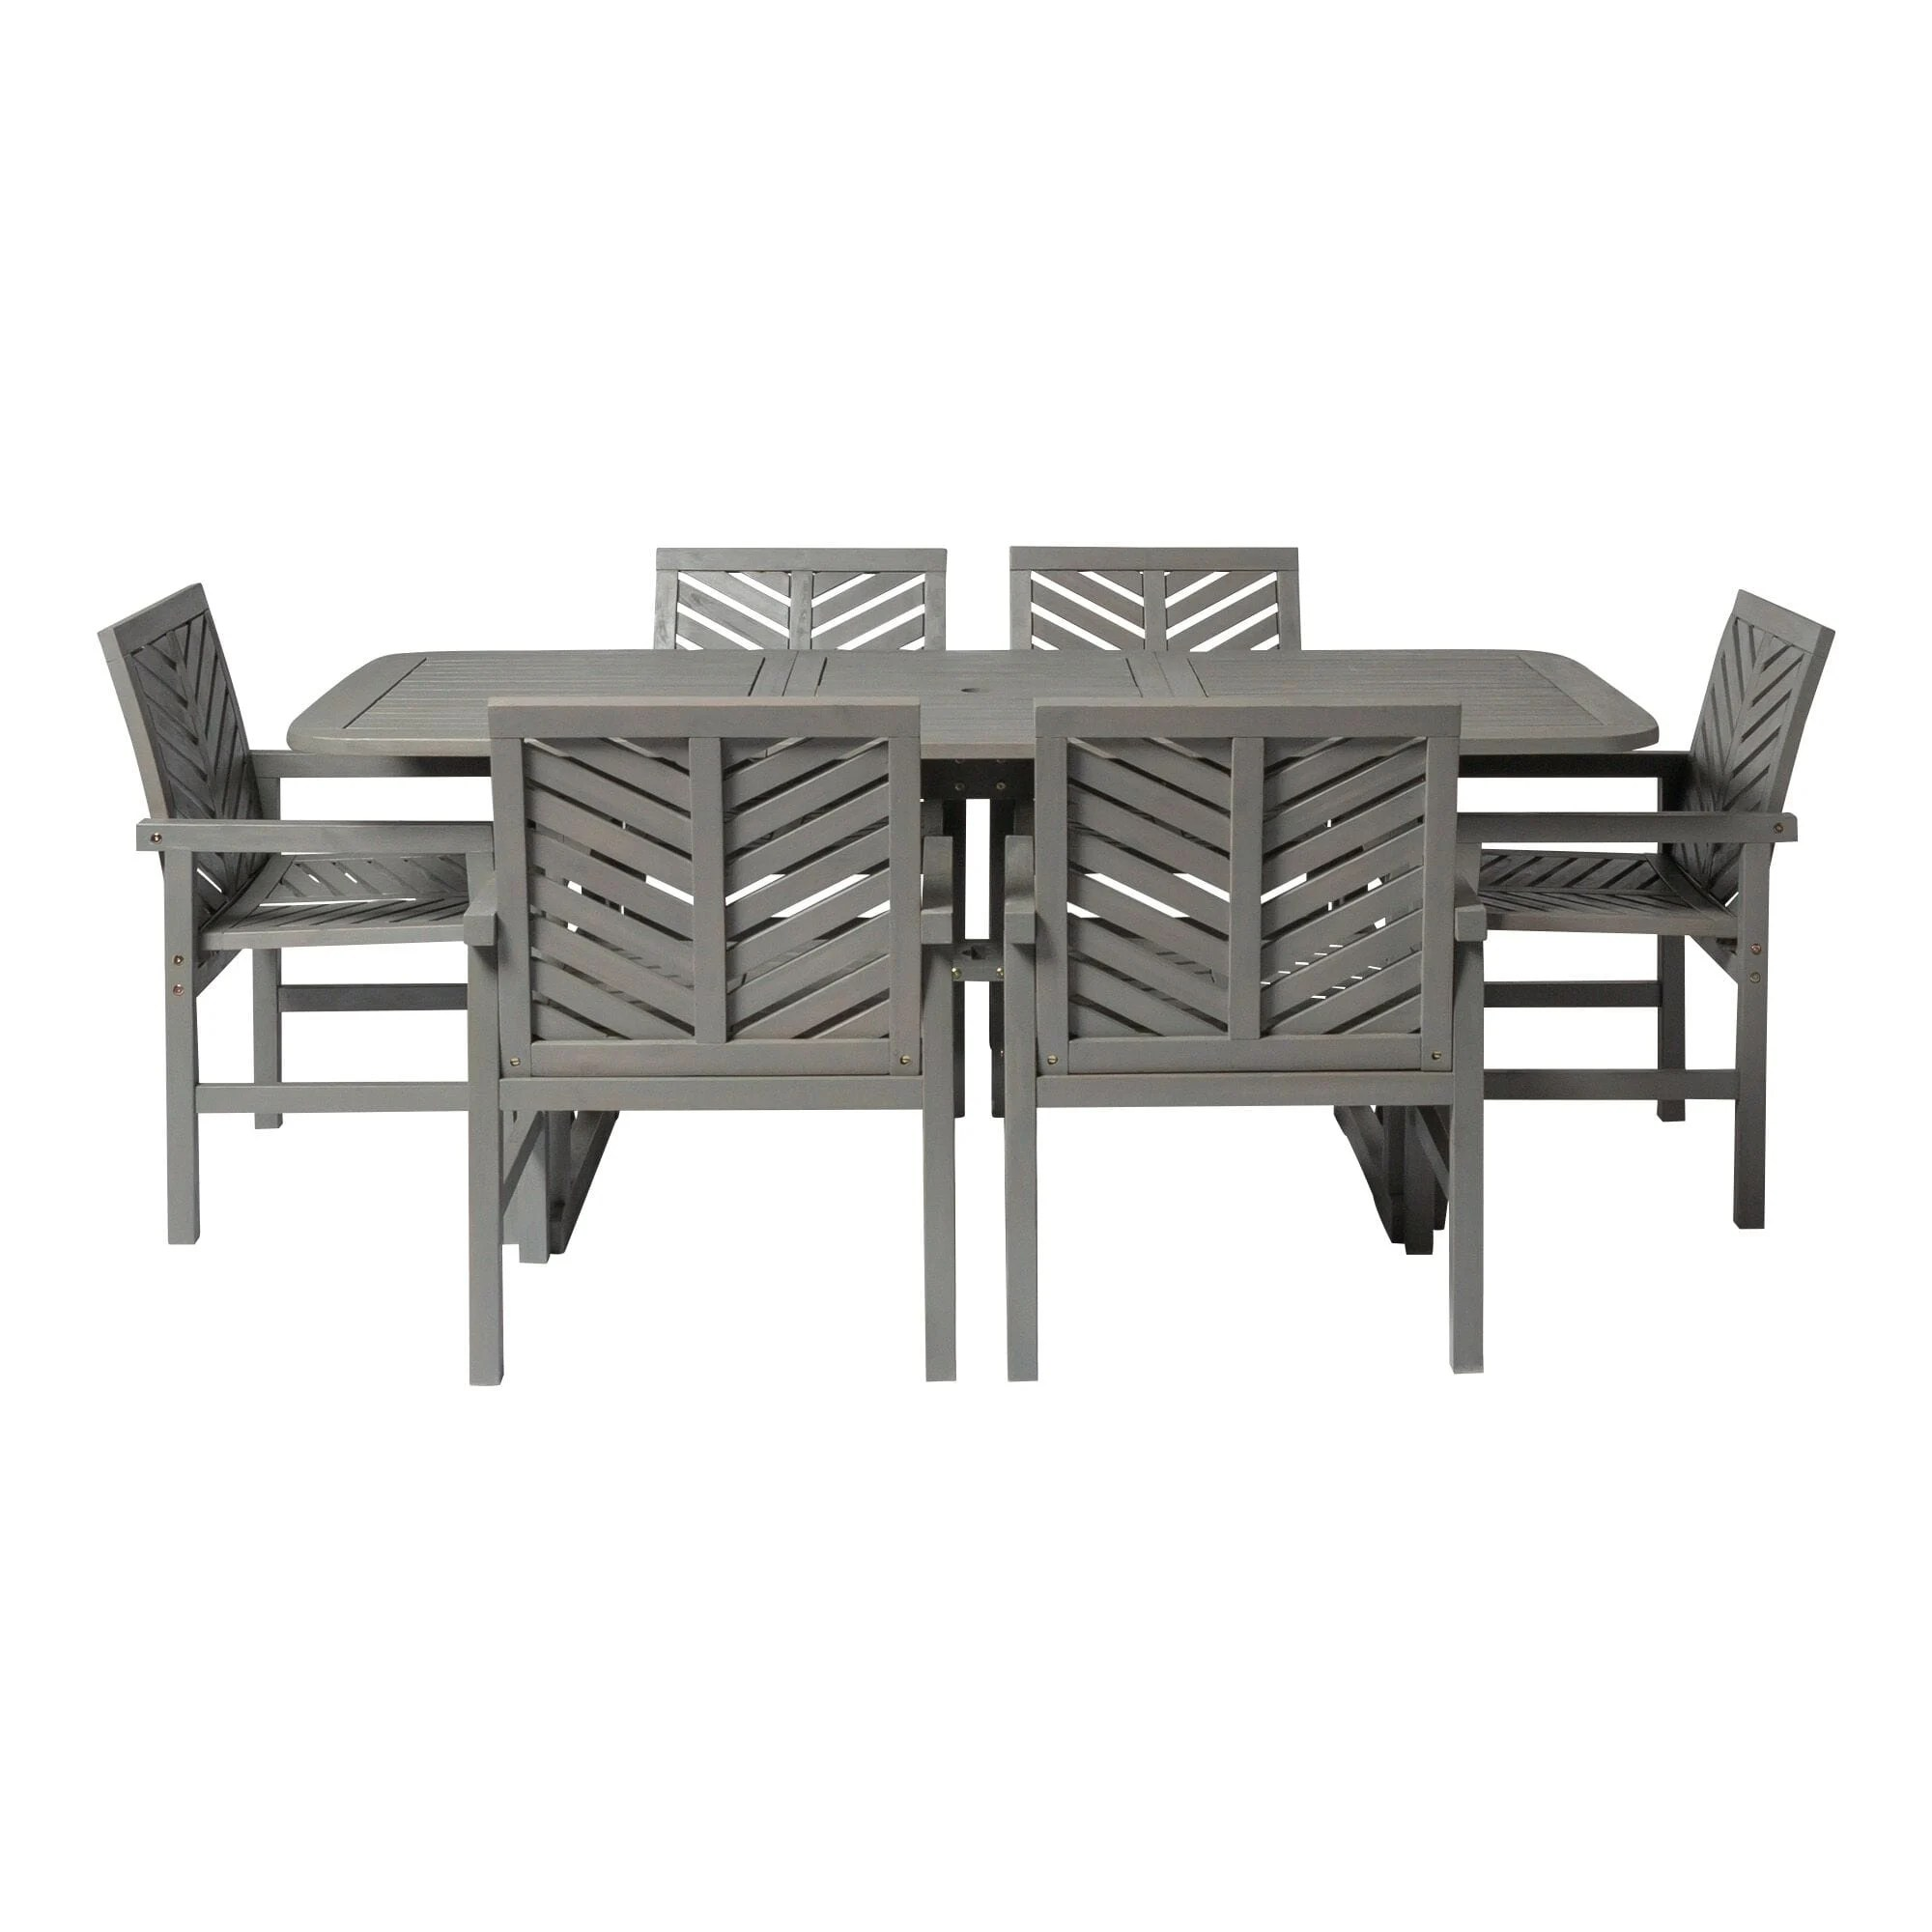 7 piece extendable outdoor patio dining set grey wash by walker edison